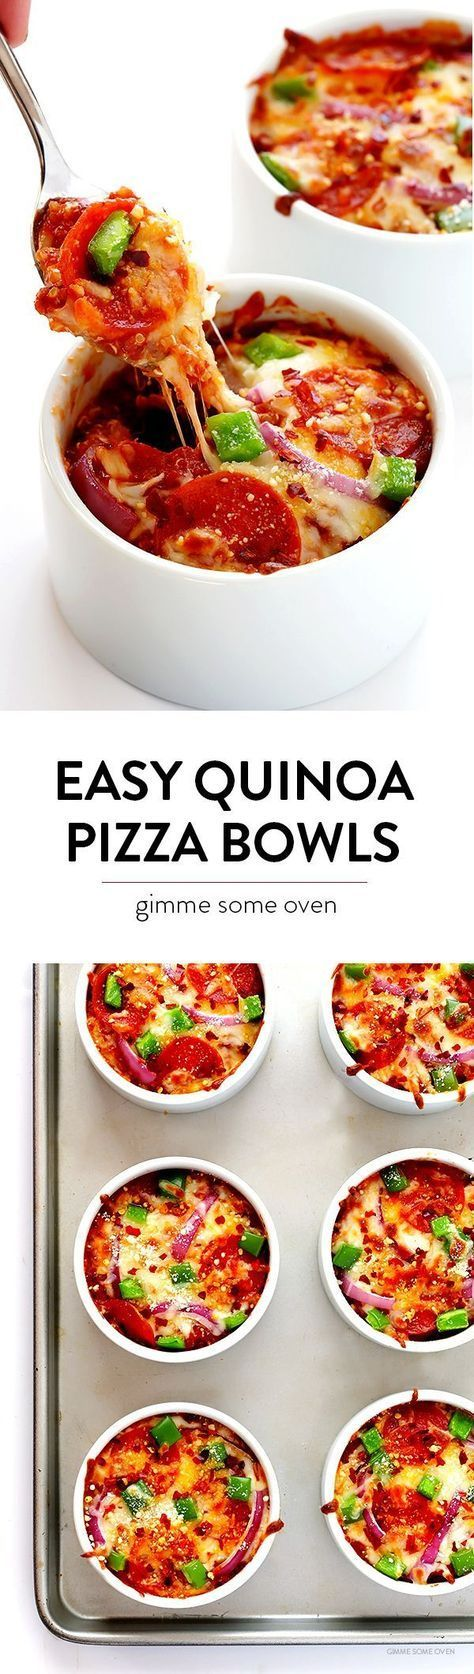 Easy Quinoa Pizza Bowls -- fun to customize with your favorite pizza toppings, and packed with protein! | gimmesomeoven.com #glutenfree